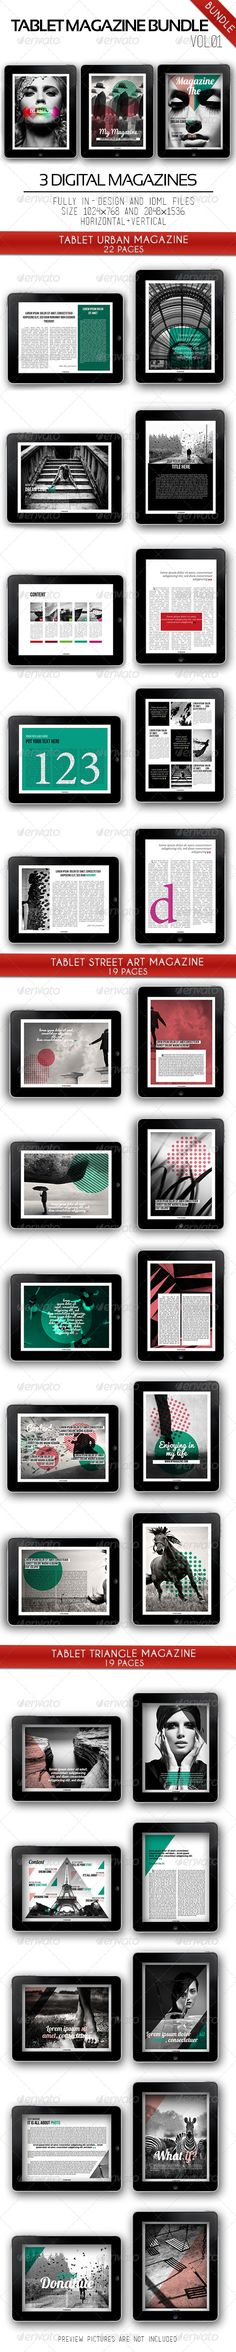 #Tablet Magazine Bundle Vol.01 - Digital #Magazines #ePublishing